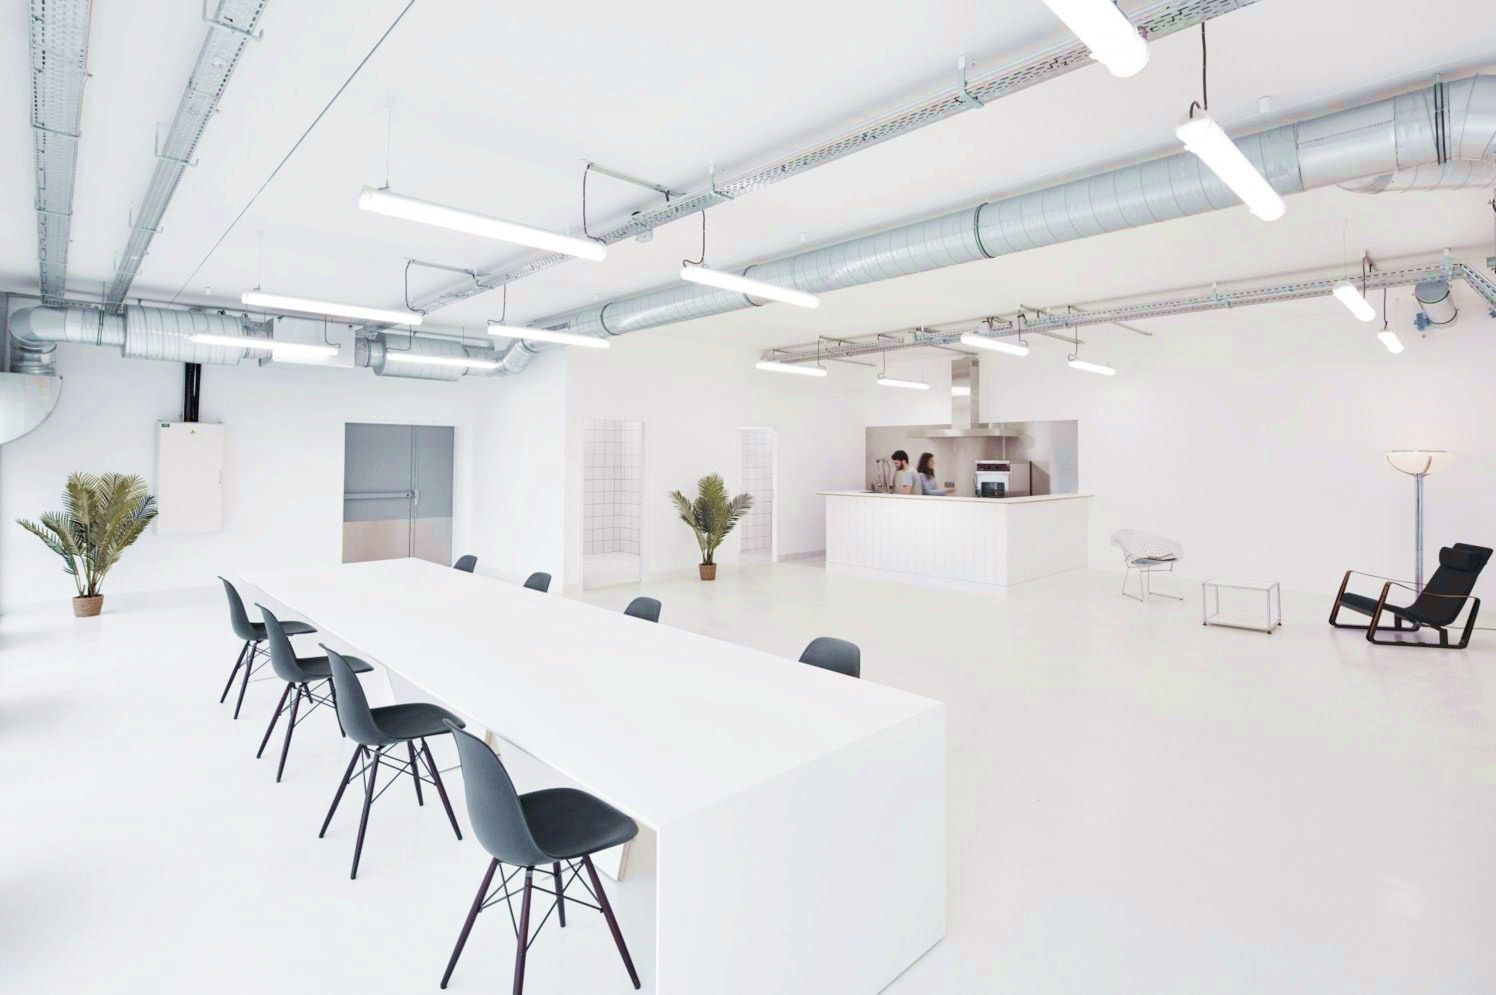 https://elonahome.com/wp-content/uploads/2020/06/Perfect-example-of-modern-office-style-giving-functional-youthful-look-for-Marine-Serre-workshop.jpg